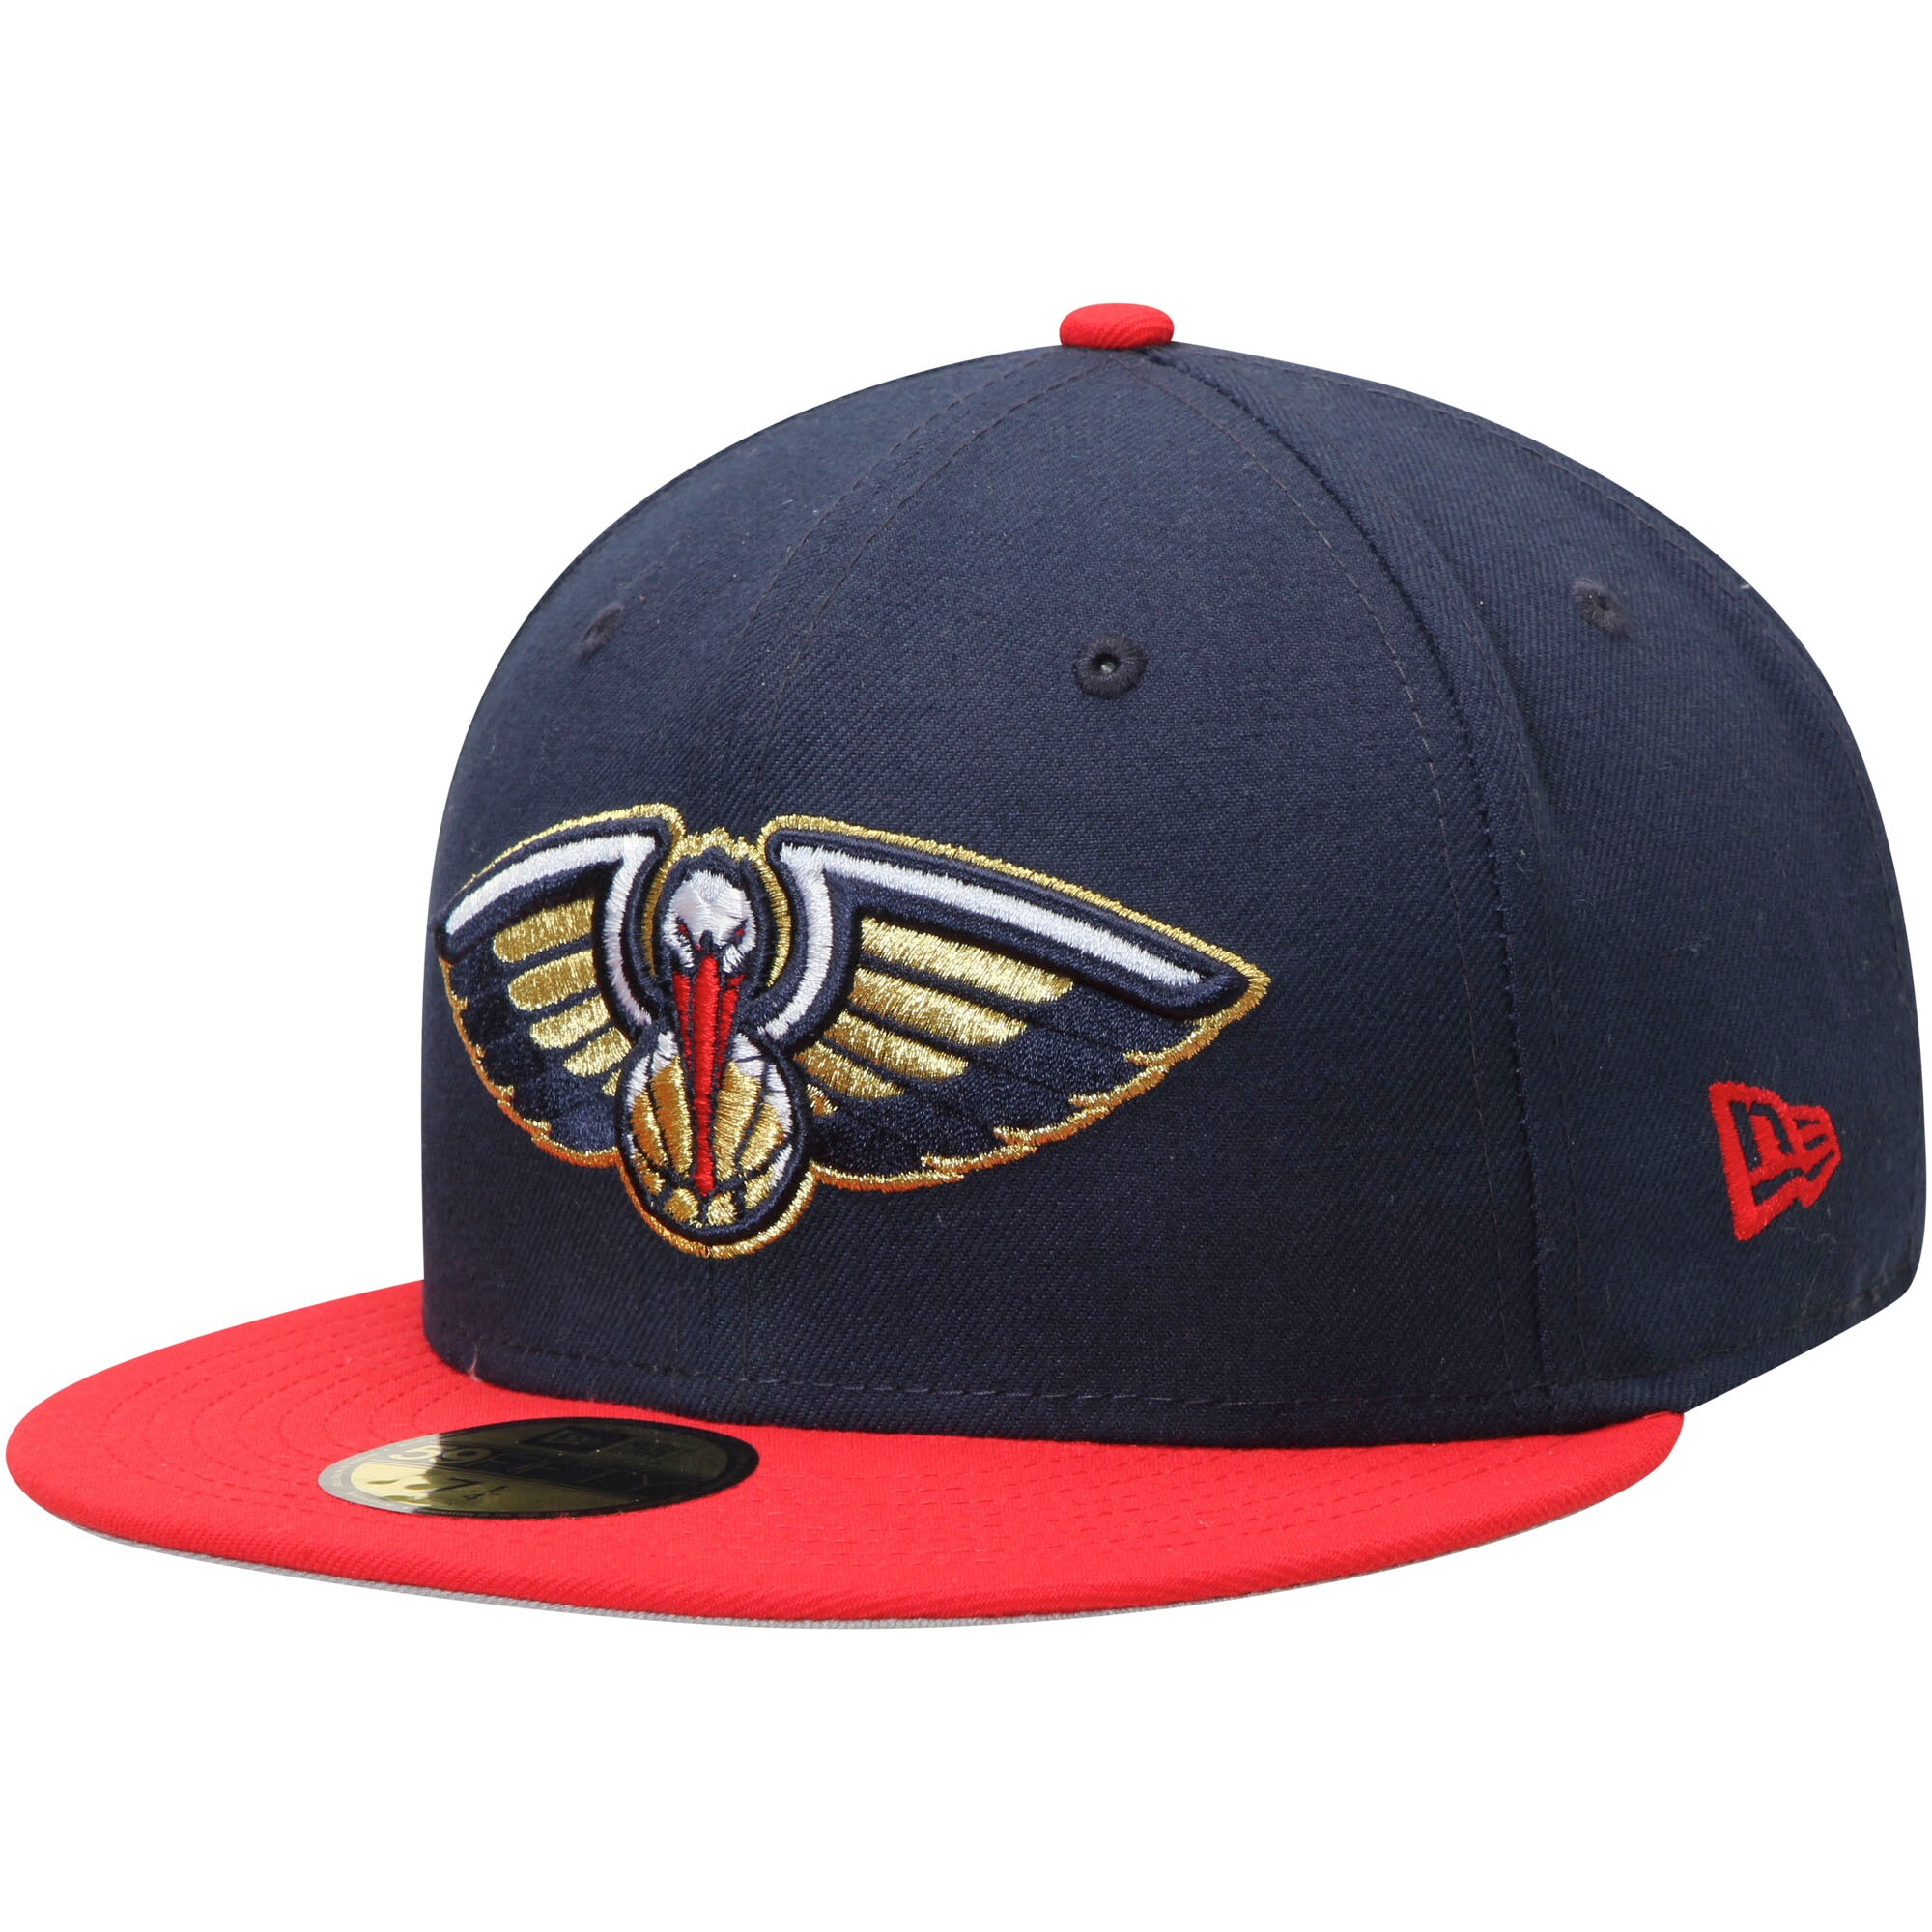 New Orleans Pelicans New Era Official Team Color 2Tone 59FIFTY Fitted Hat - Navy/Red